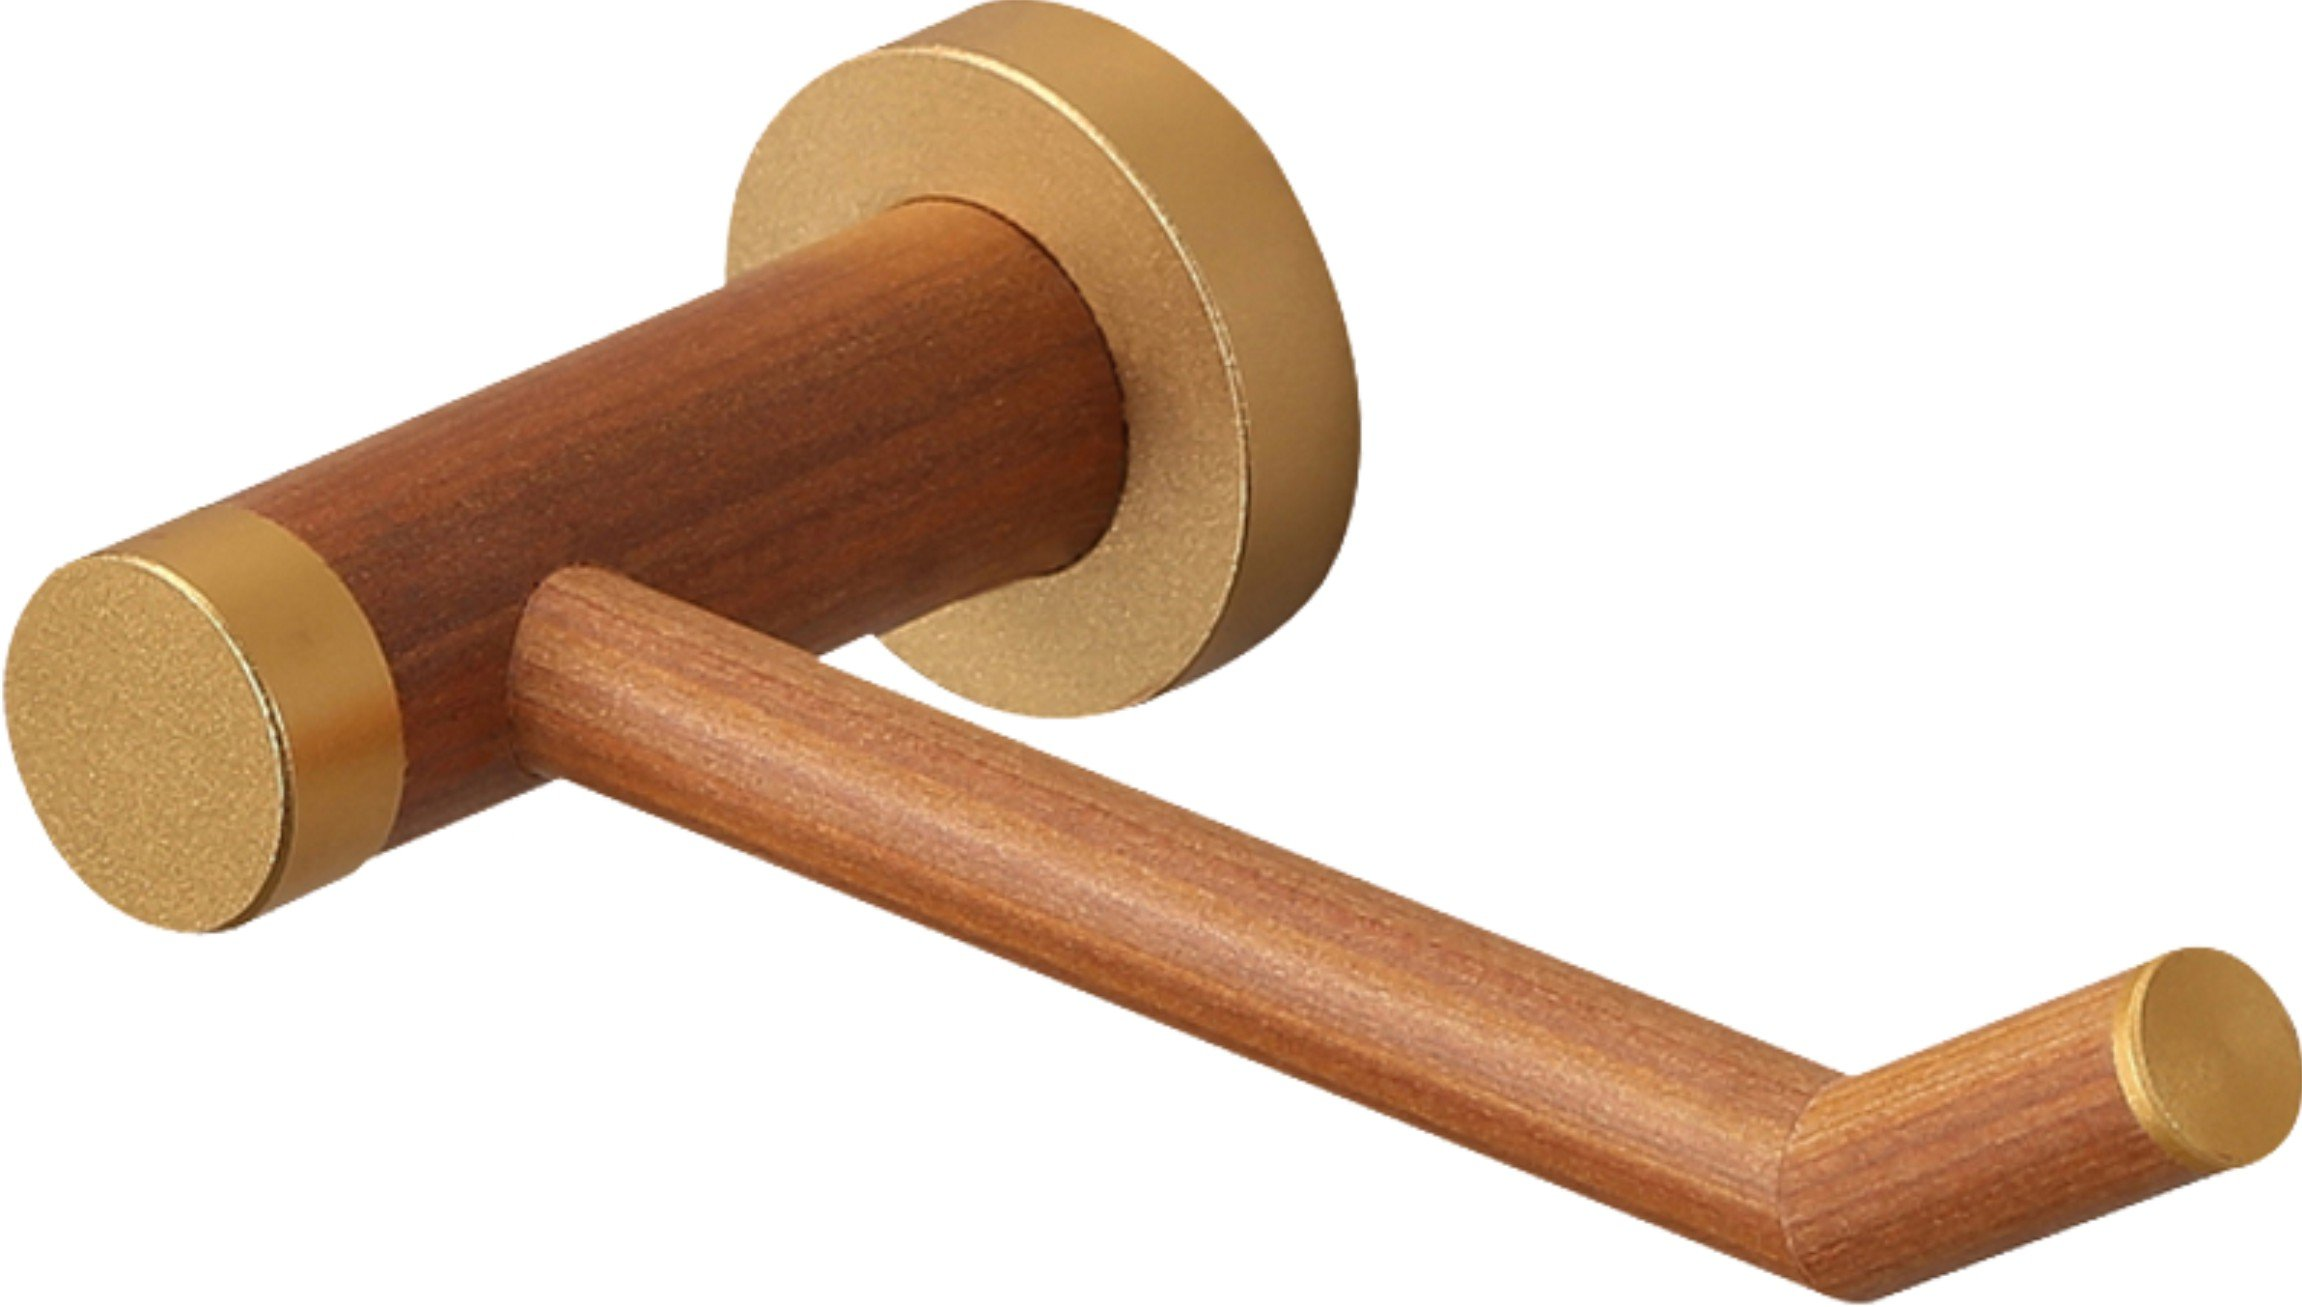 YuanDa Toilet Paper Holder Made of Ecological Wood Tissue Holder with Metal Core Wooden Appearance